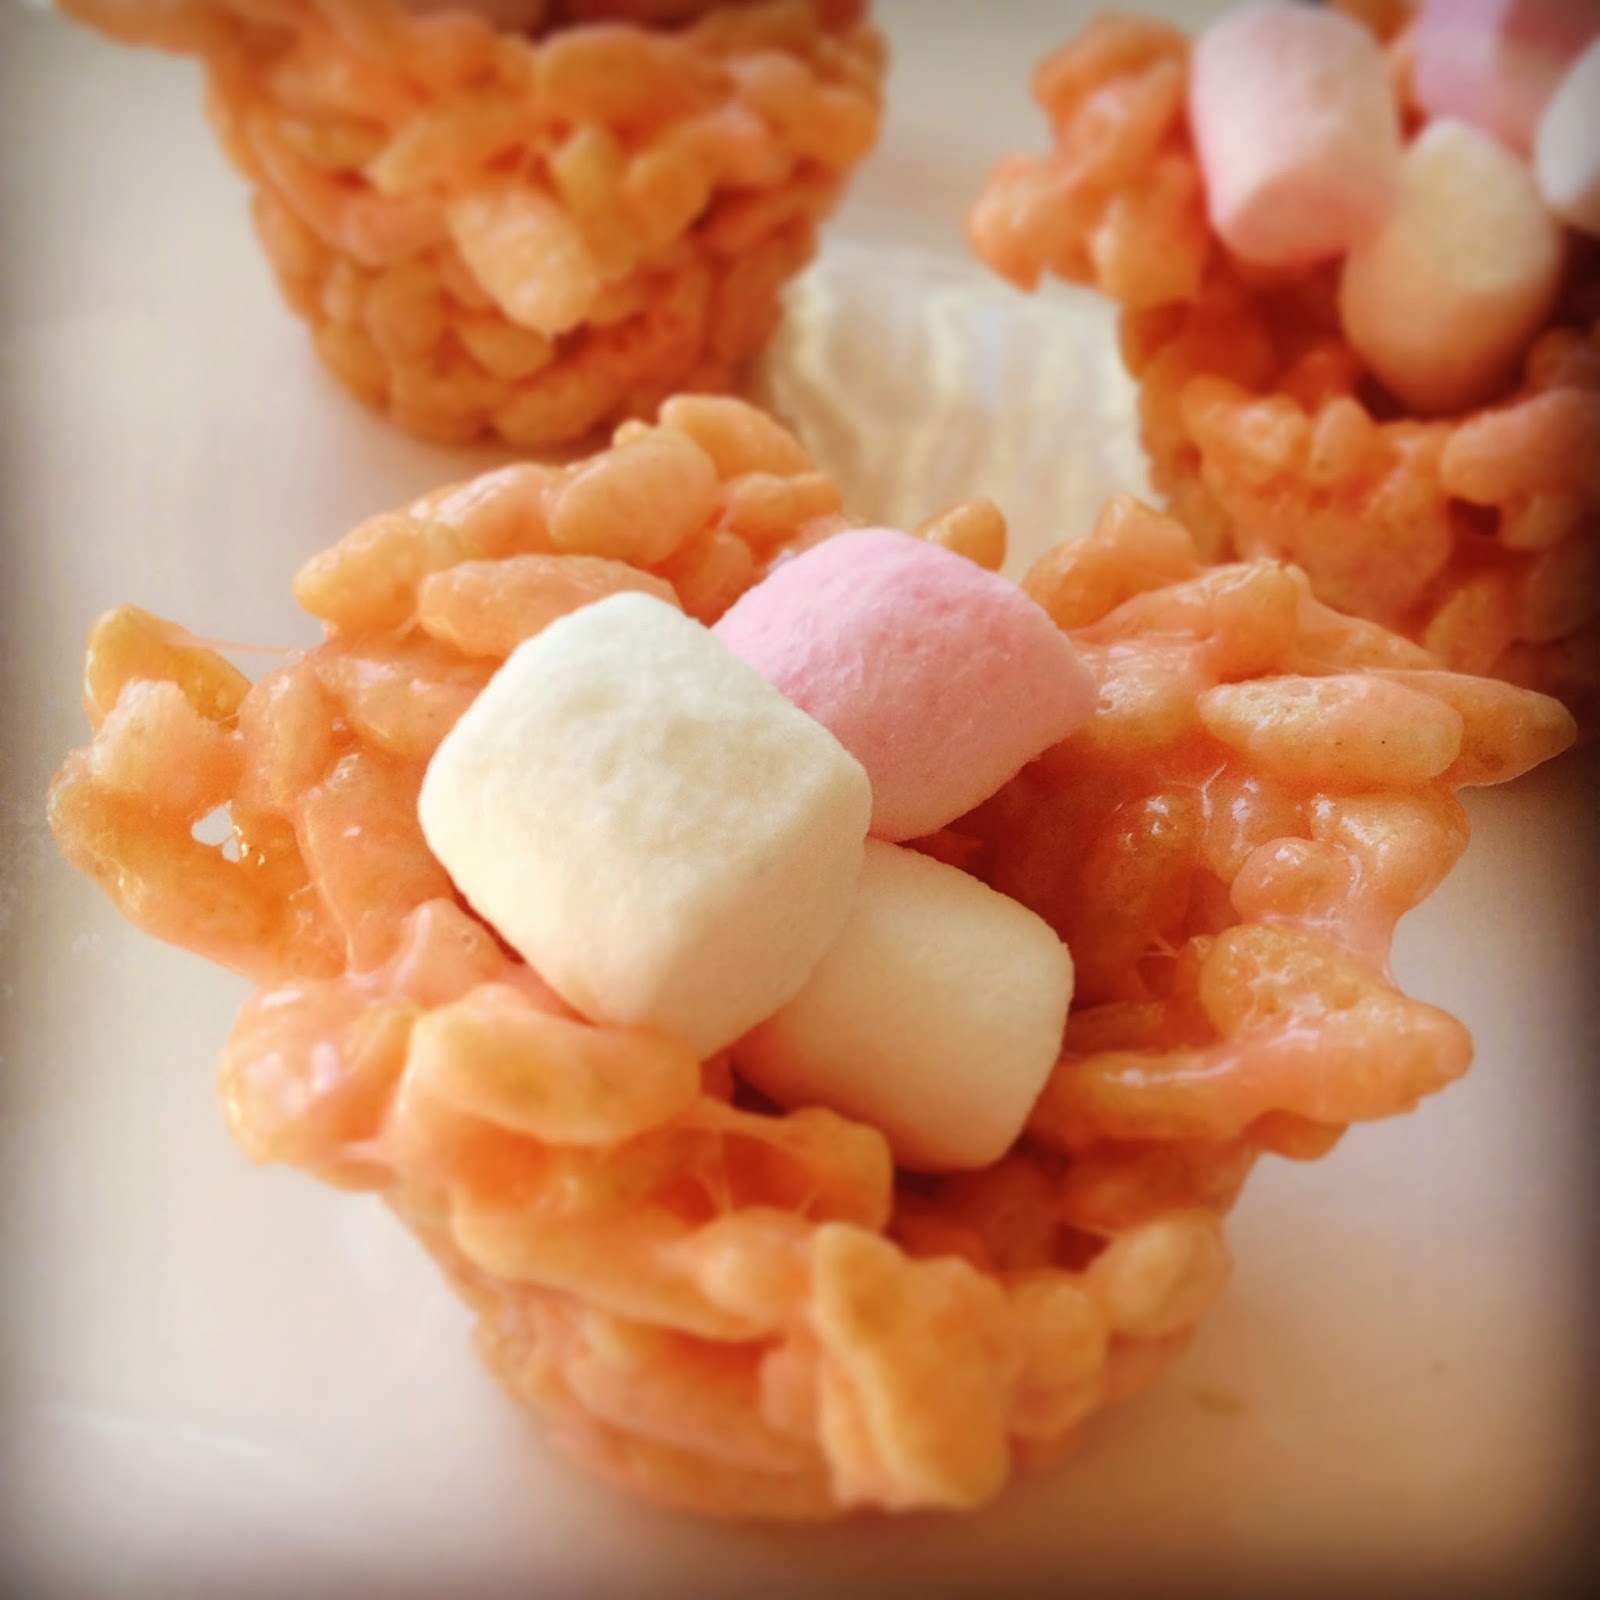 Easter Marshmallow Nests - Gluten-Free Recipe Credit: Lucy Corry/The Kitchenmaid